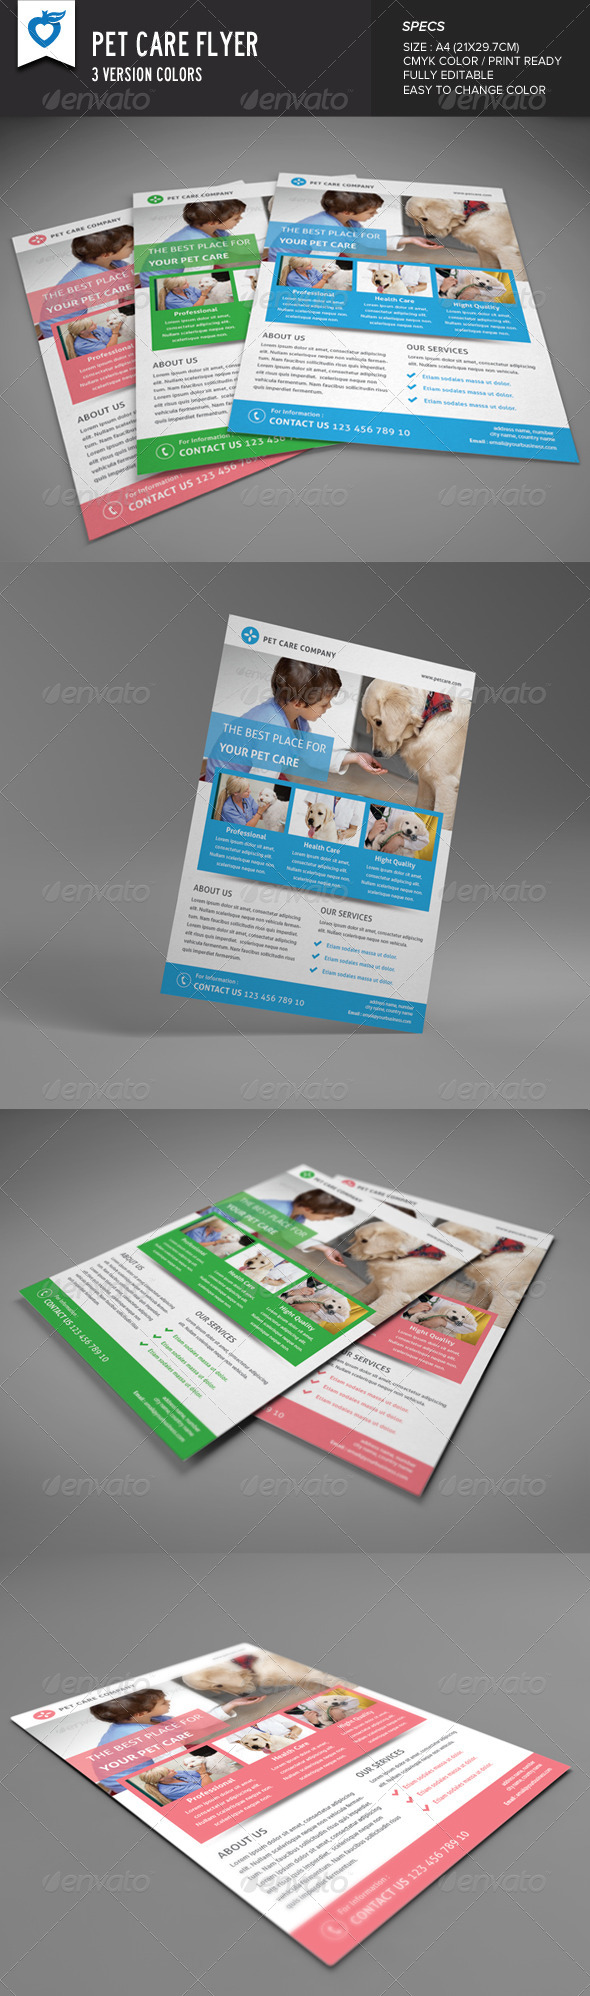 GraphicRiver Pet Care Flyer 8389802